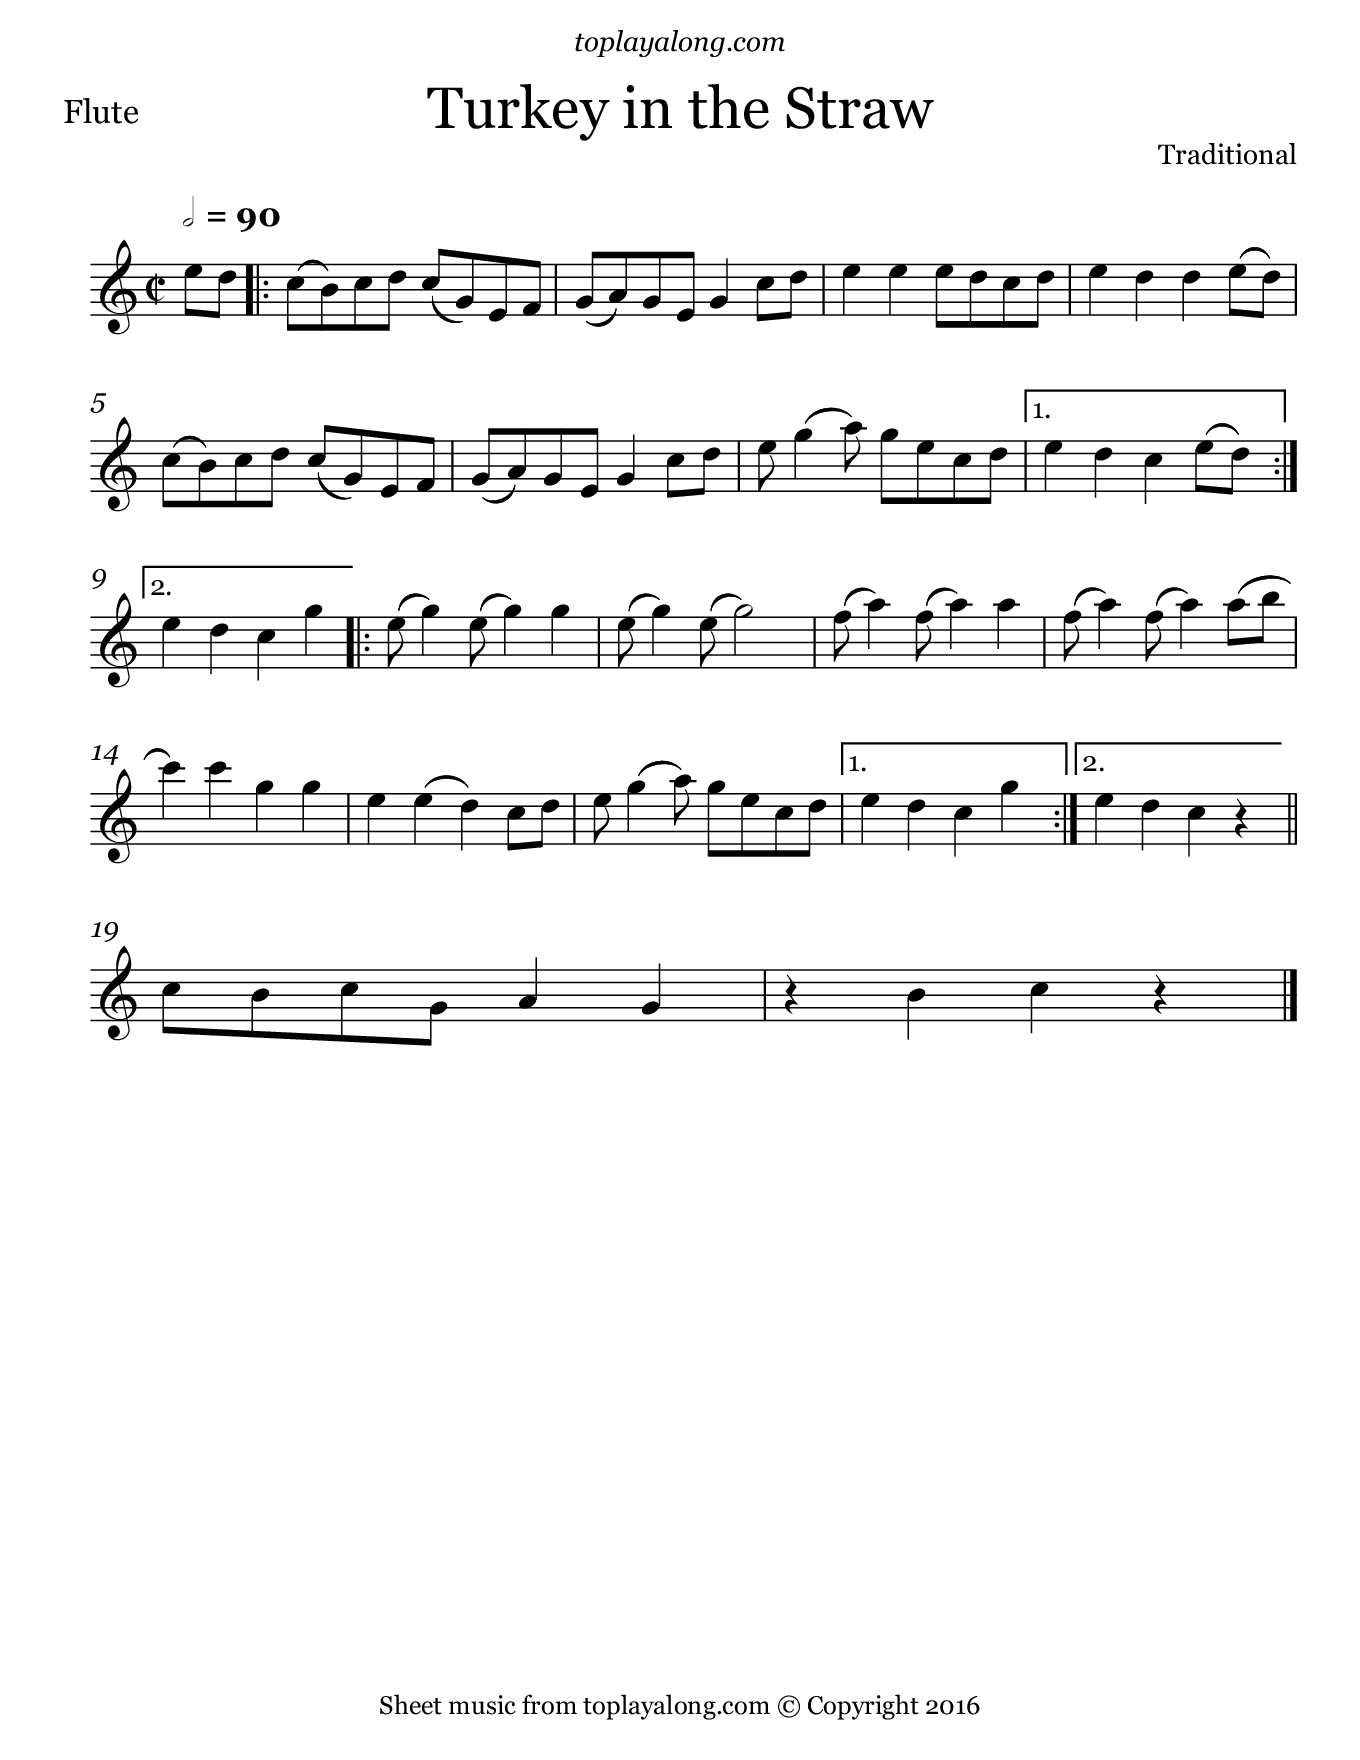 Turkey in the Straw. Sheet music for Flute, page 1.